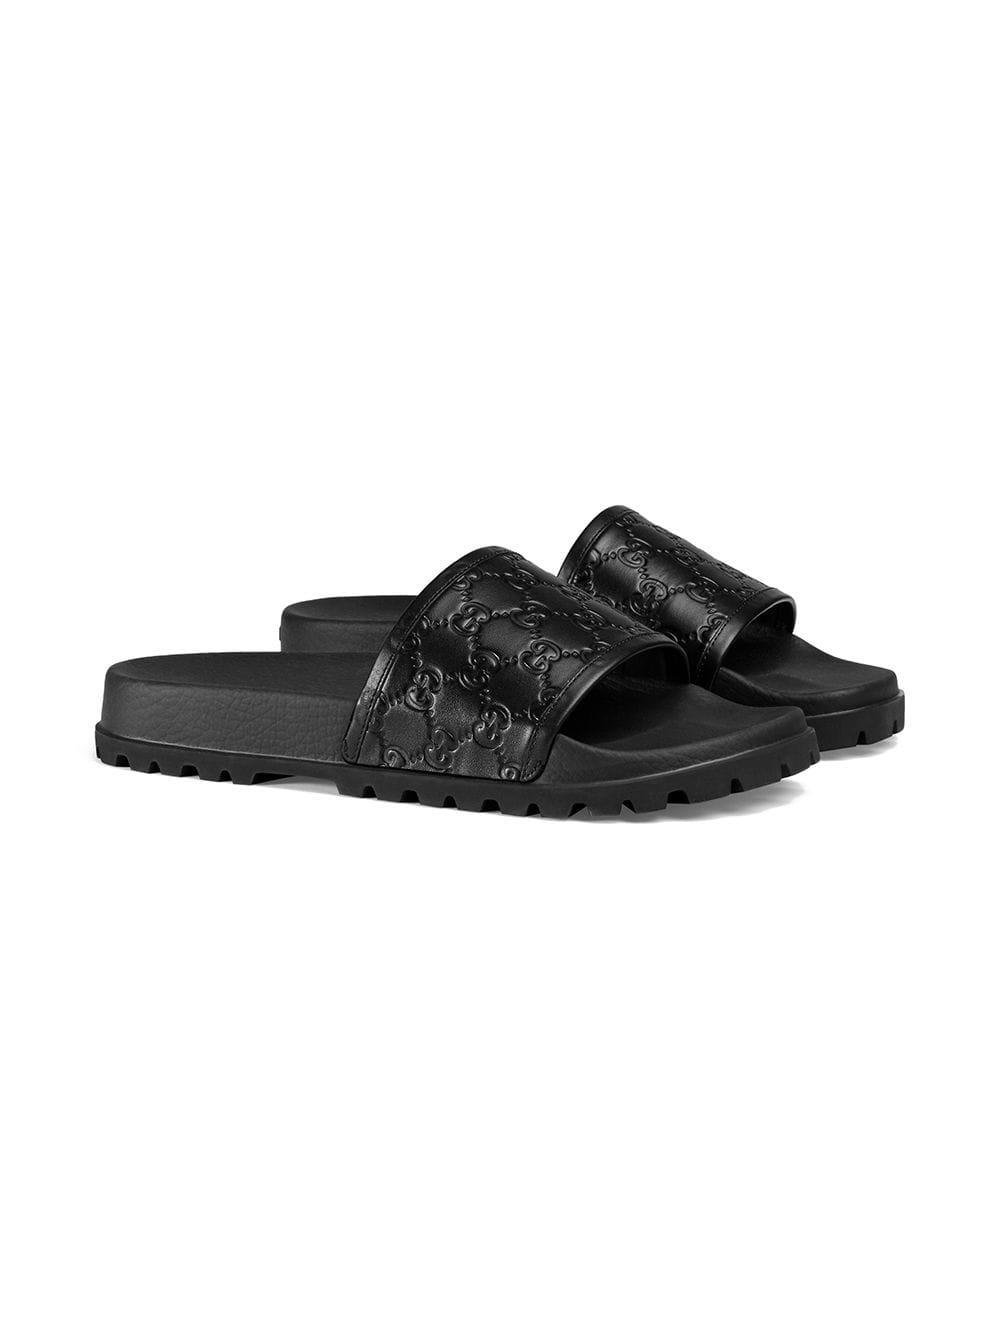 1df760c399c Gucci - Black Signature Slide Sandal for Men - Lyst. View fullscreen